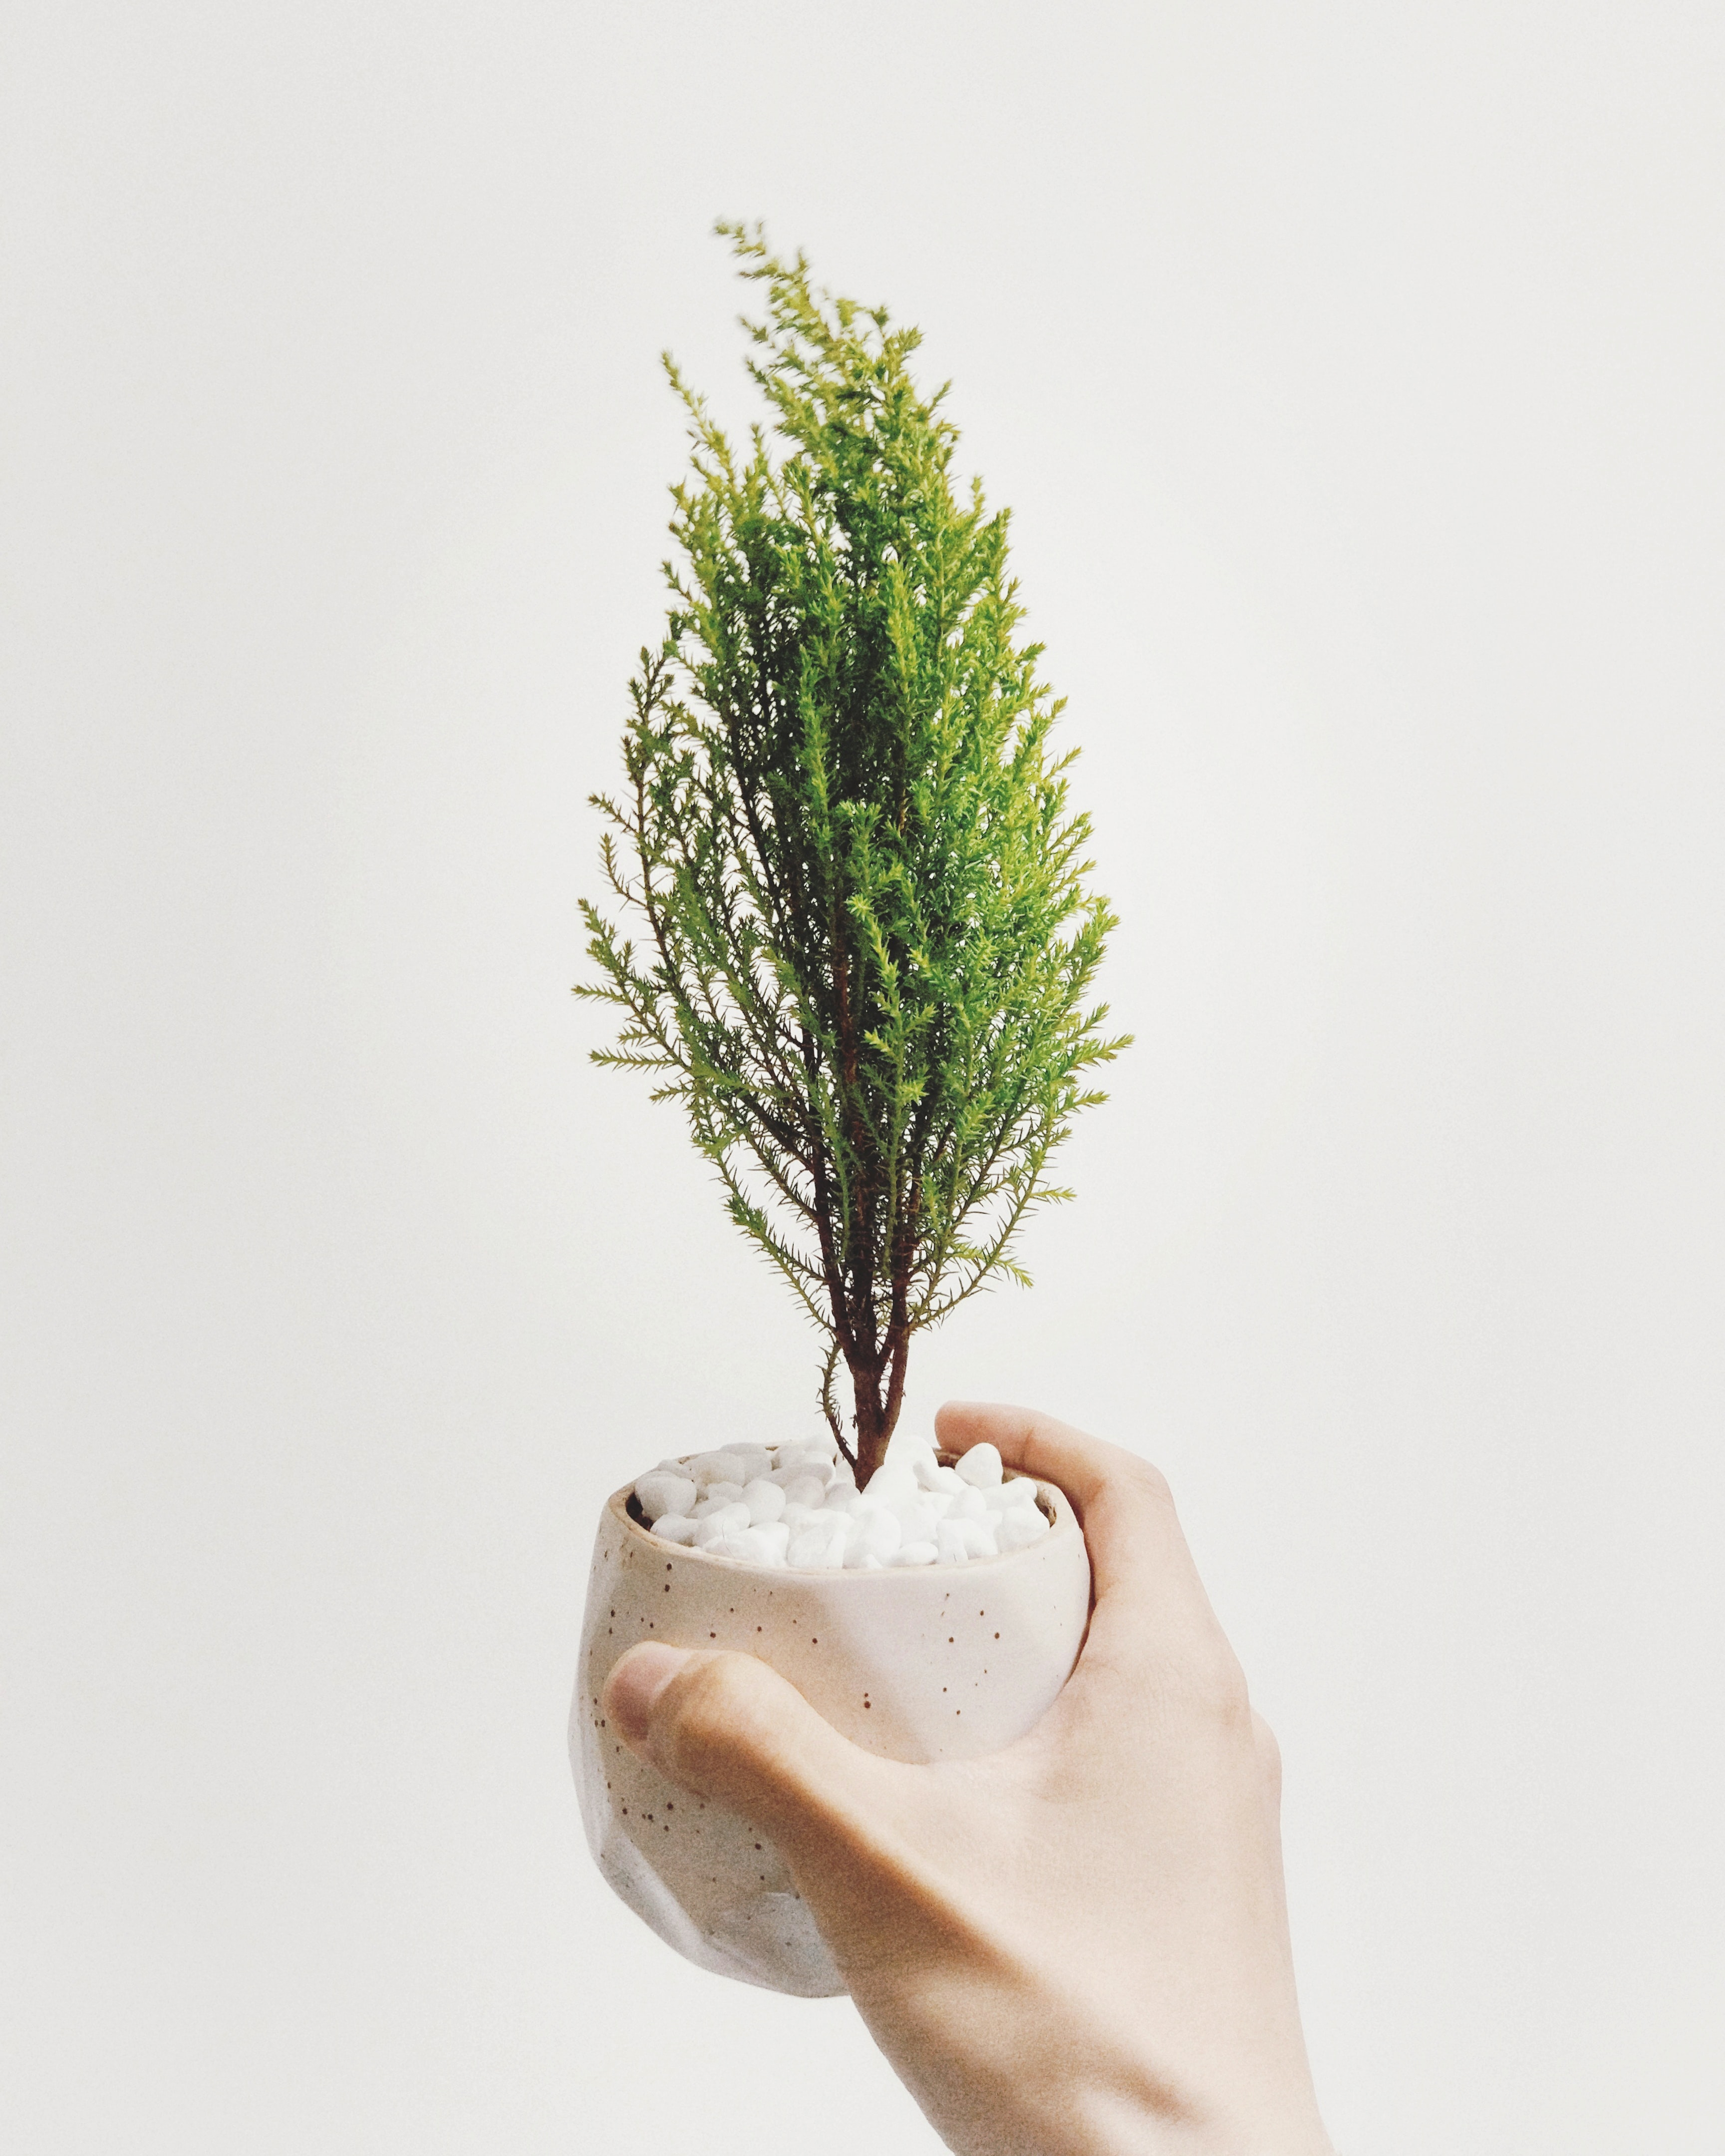 person holding vase of green leafed plant